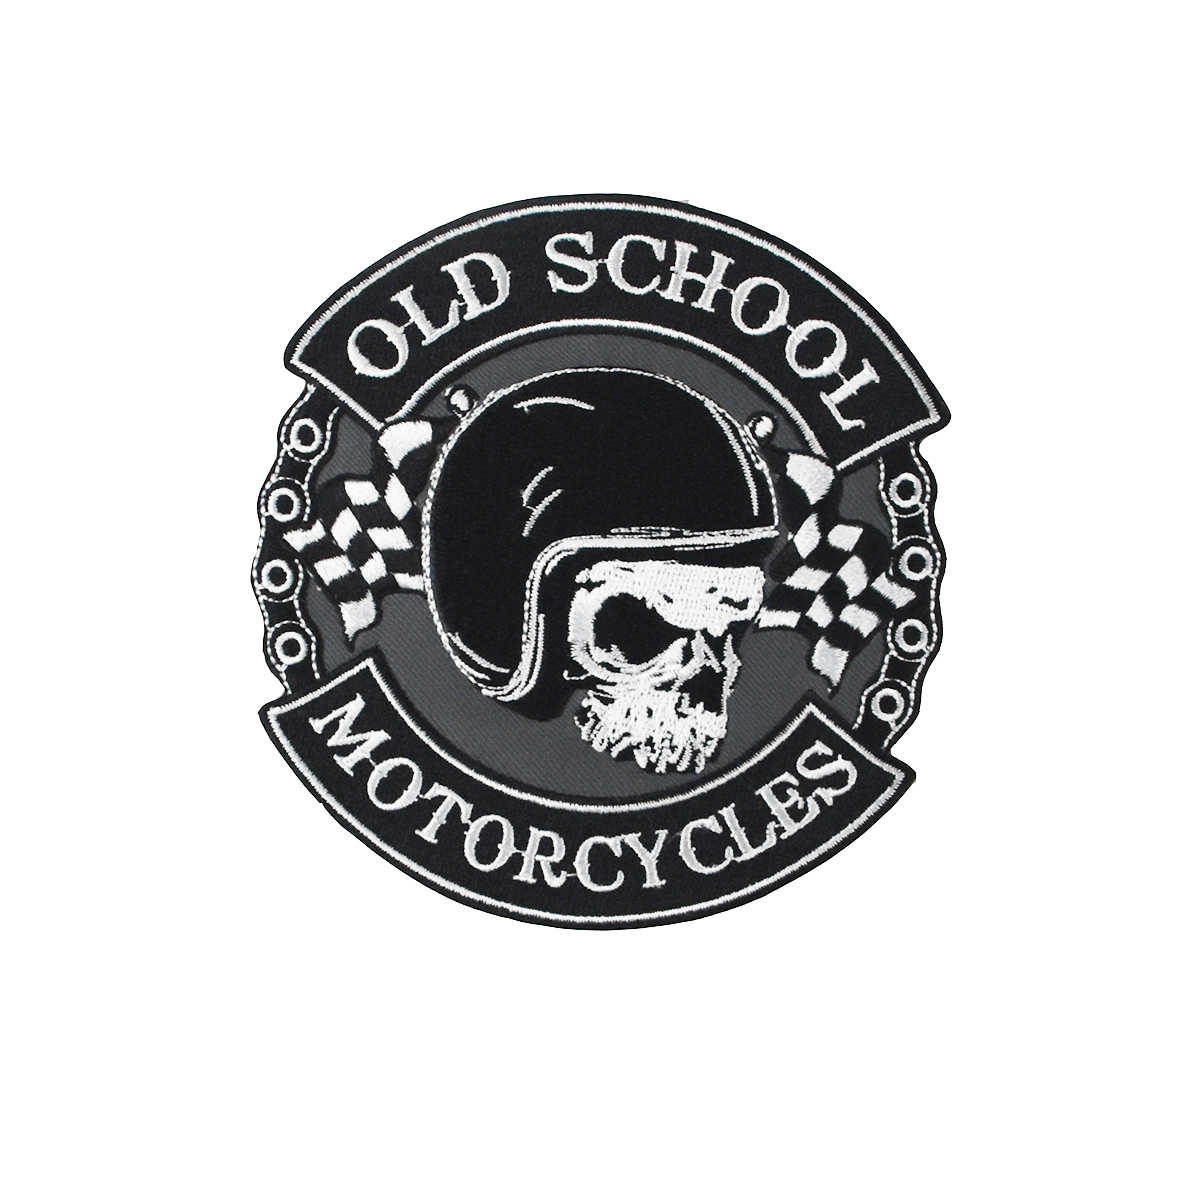 Old School Skull Patches embroidery iron on Motorcycle custom DIY cool biker patches punk badge heat transfer for clothing shirt